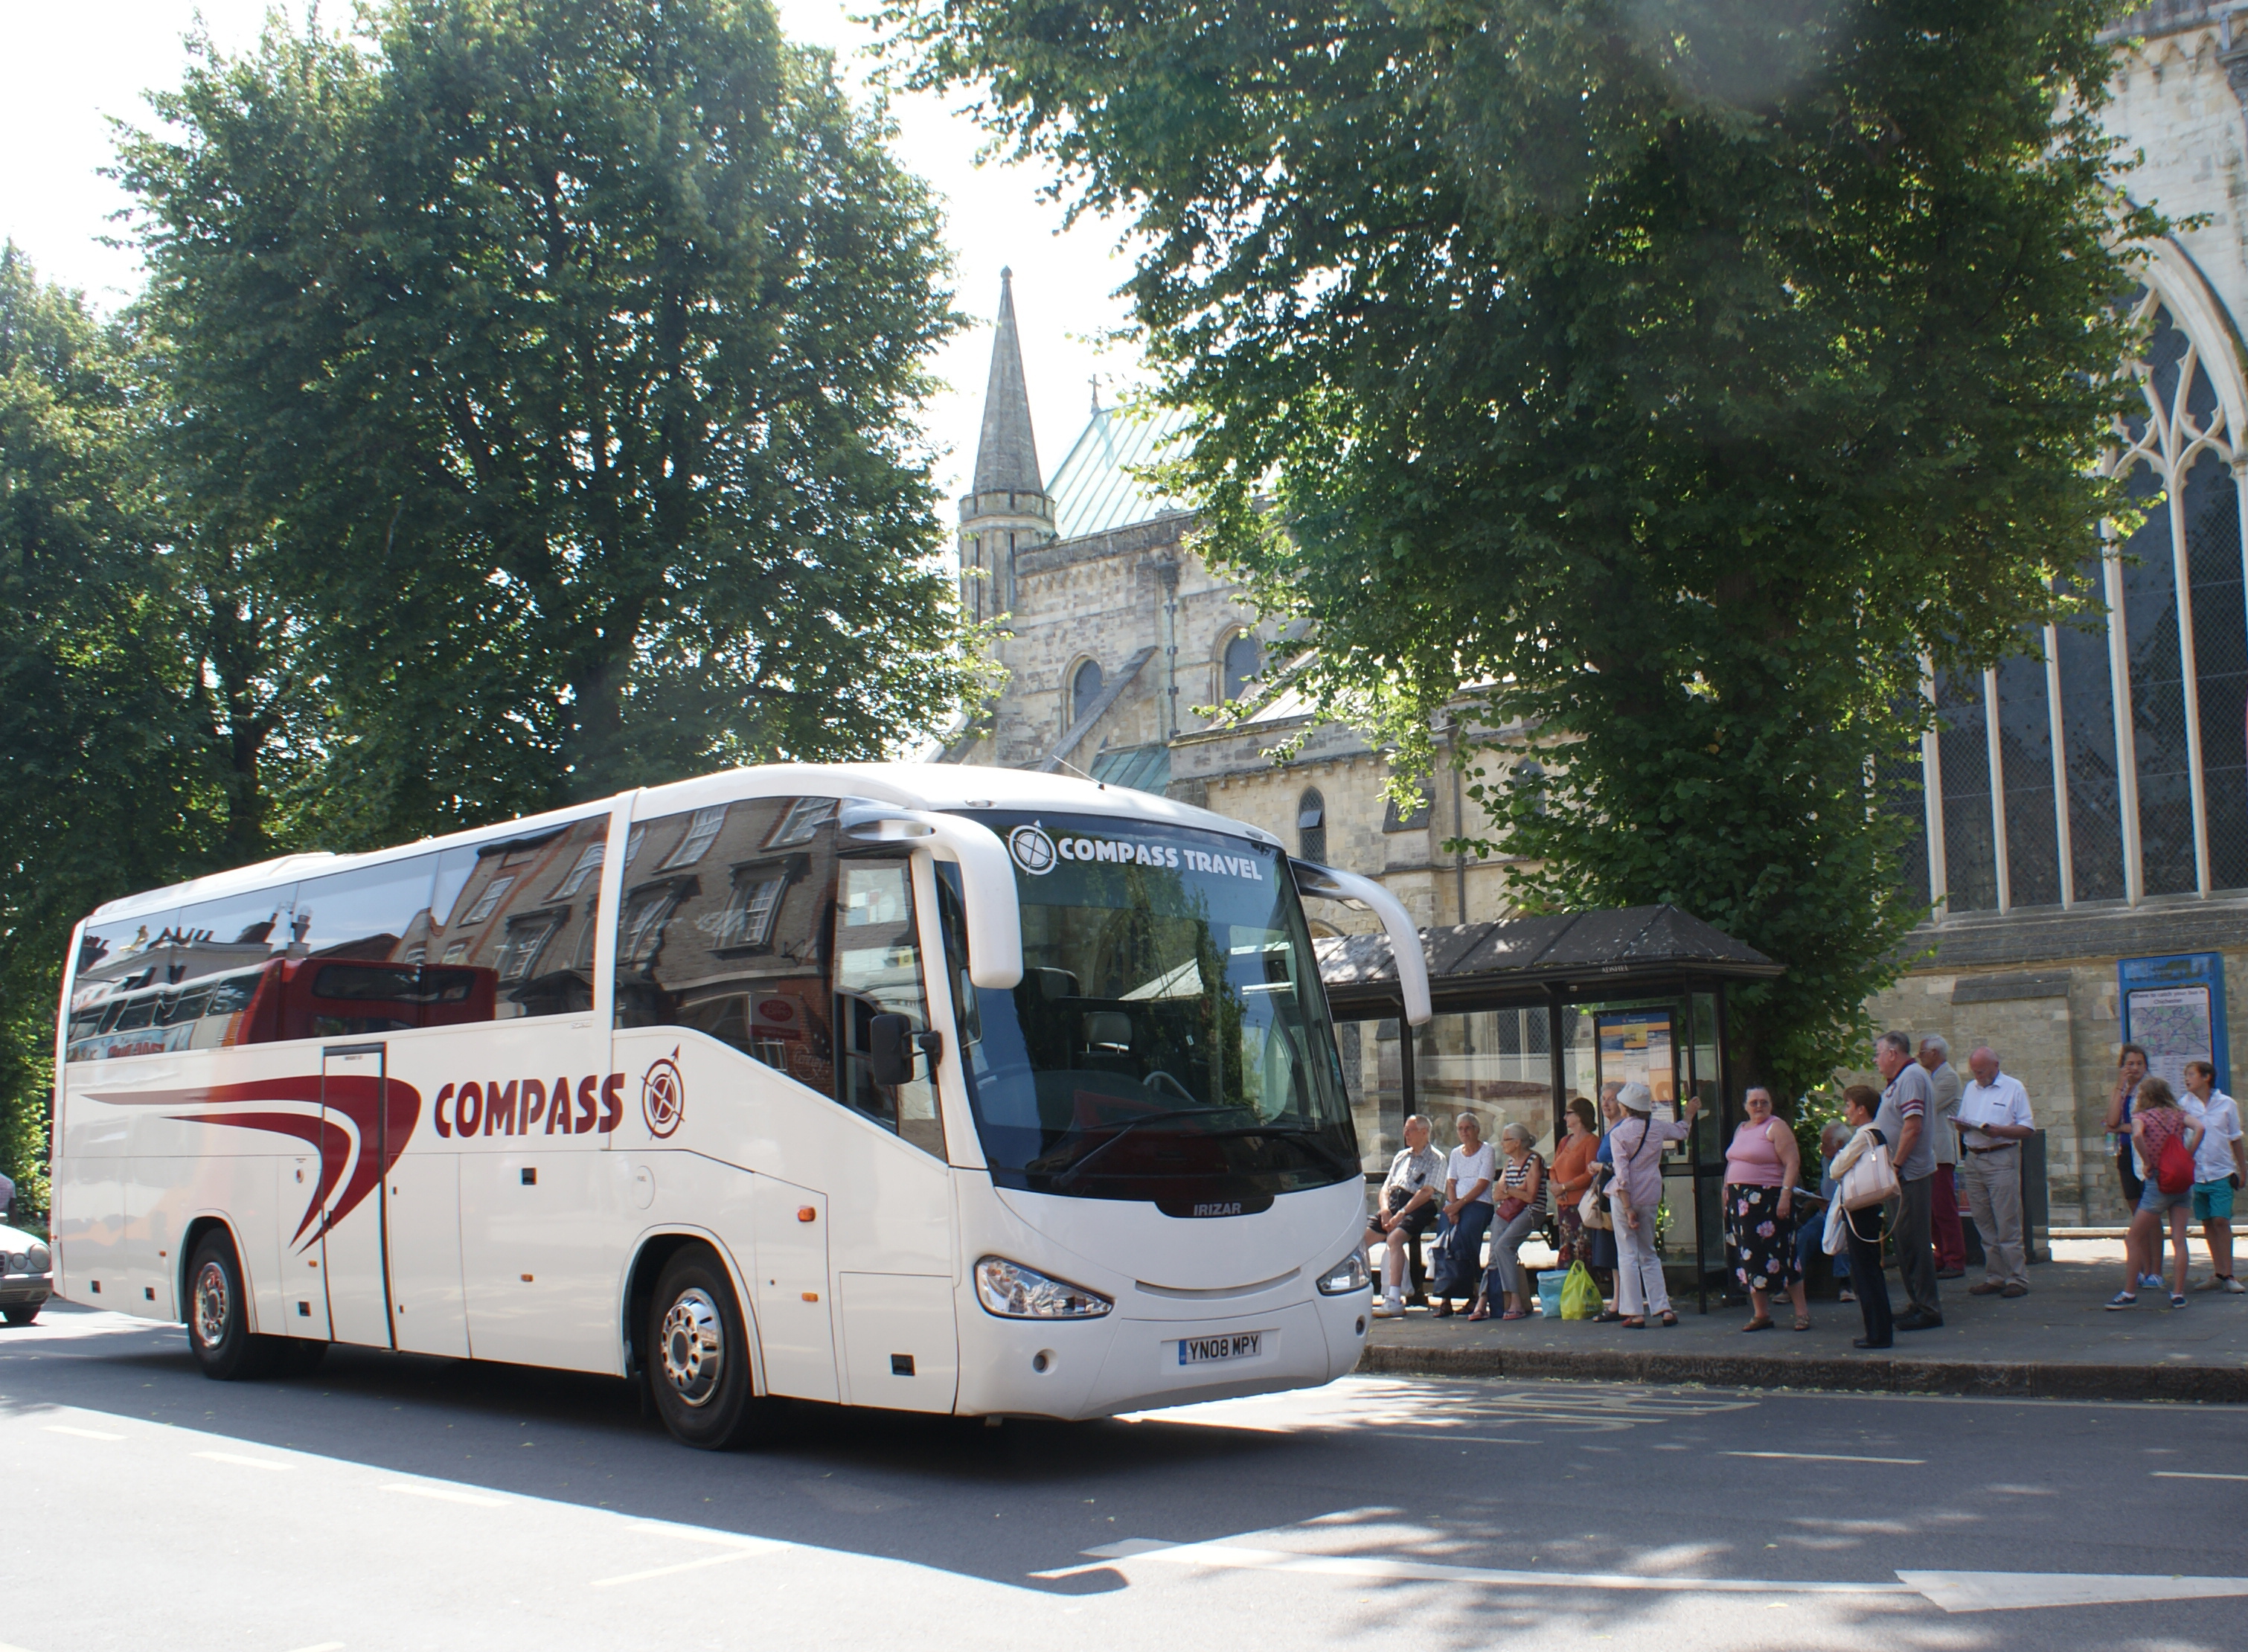 Coach Hire With Compass Travel Compass Travel